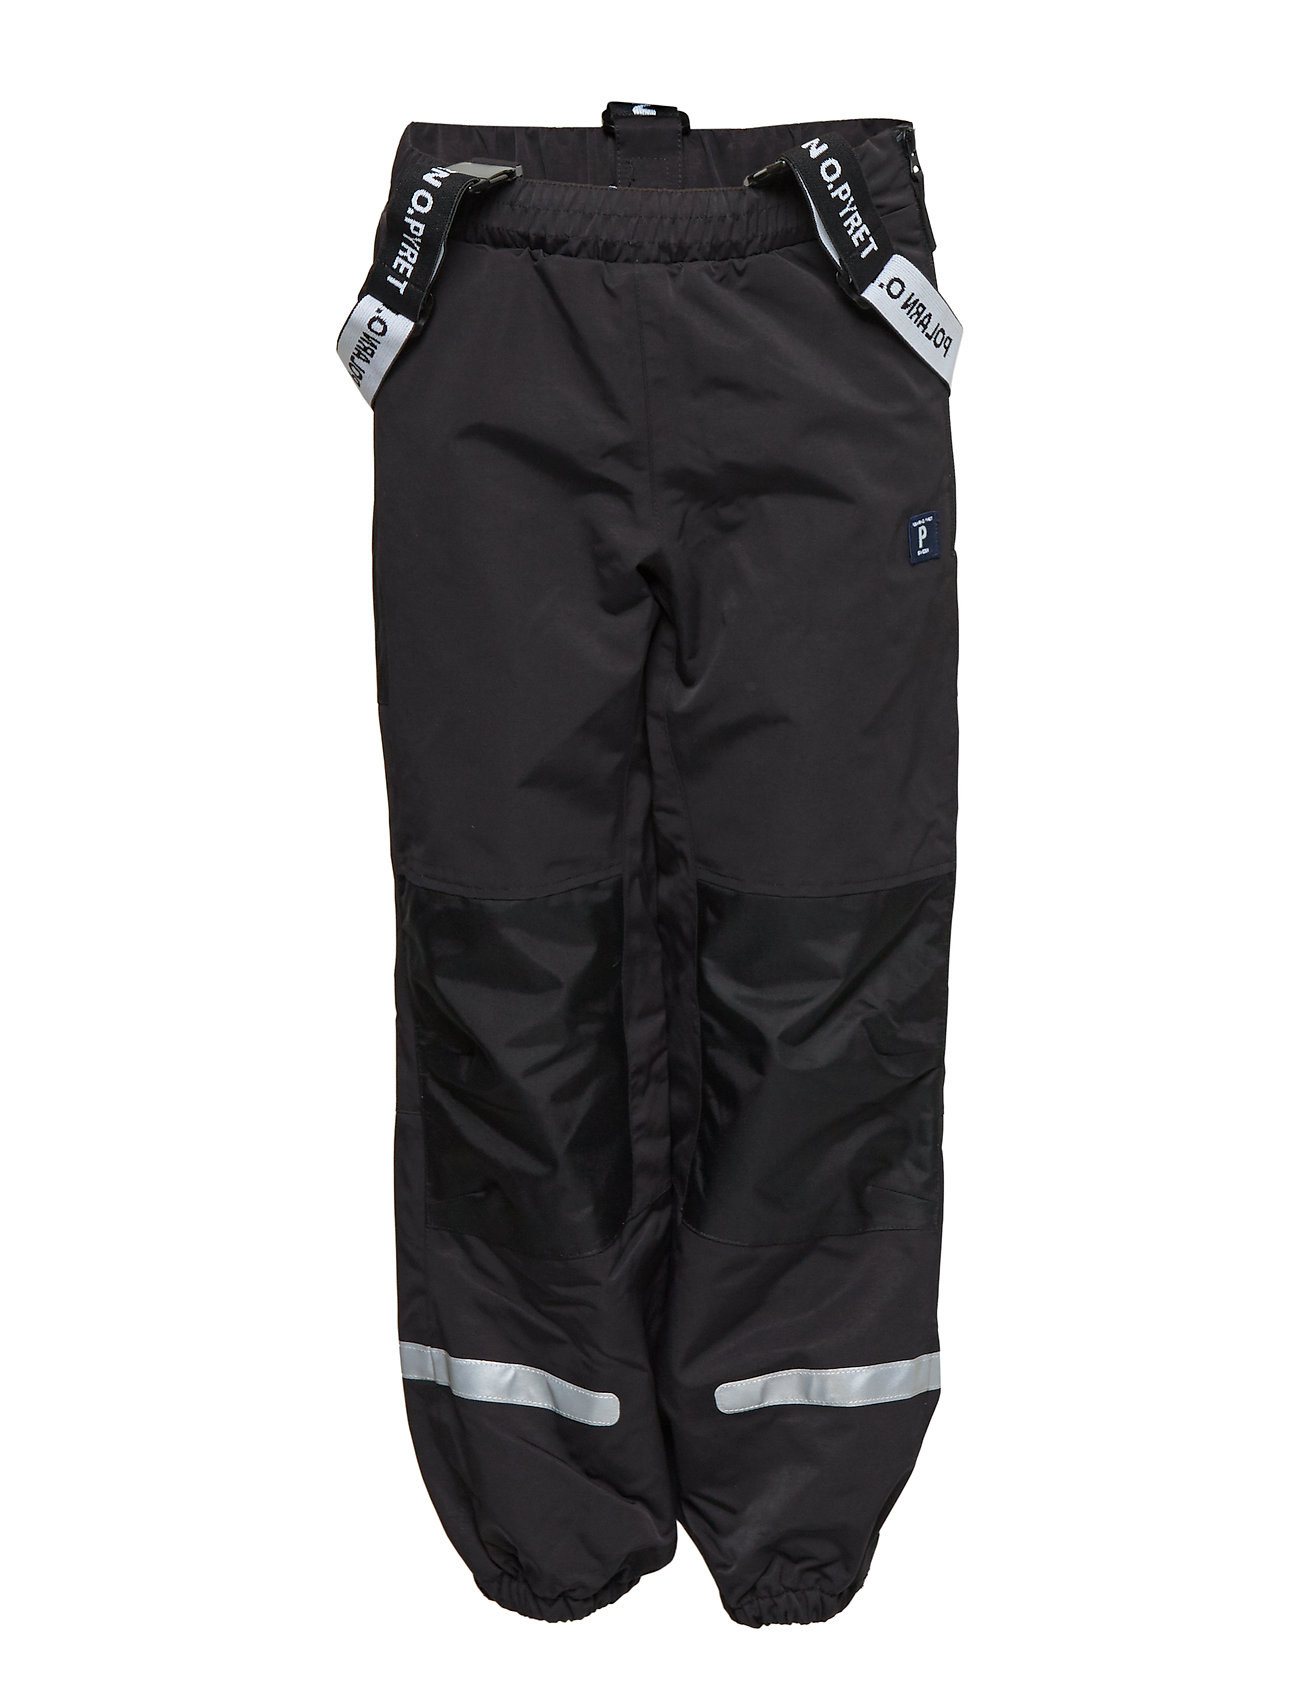 Polarn O. Pyret Shell trousers